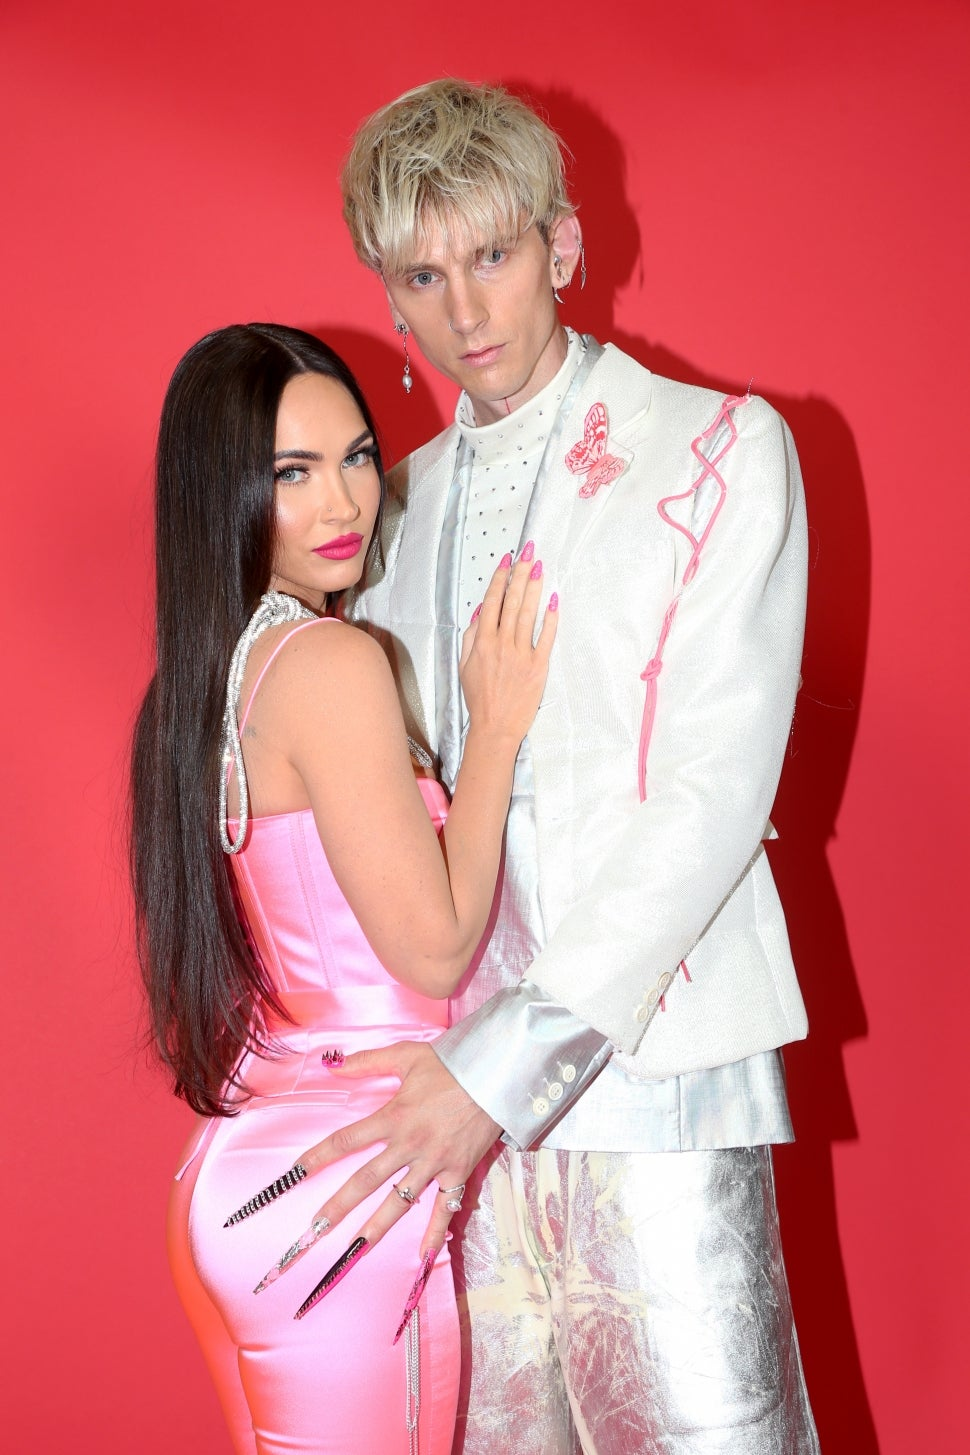 Machine Gun Kelly Shows Off Super Long Nails on Red Carpet With Megan Fox at 2021 iHeart Radio Awards | Entertainment Tonight